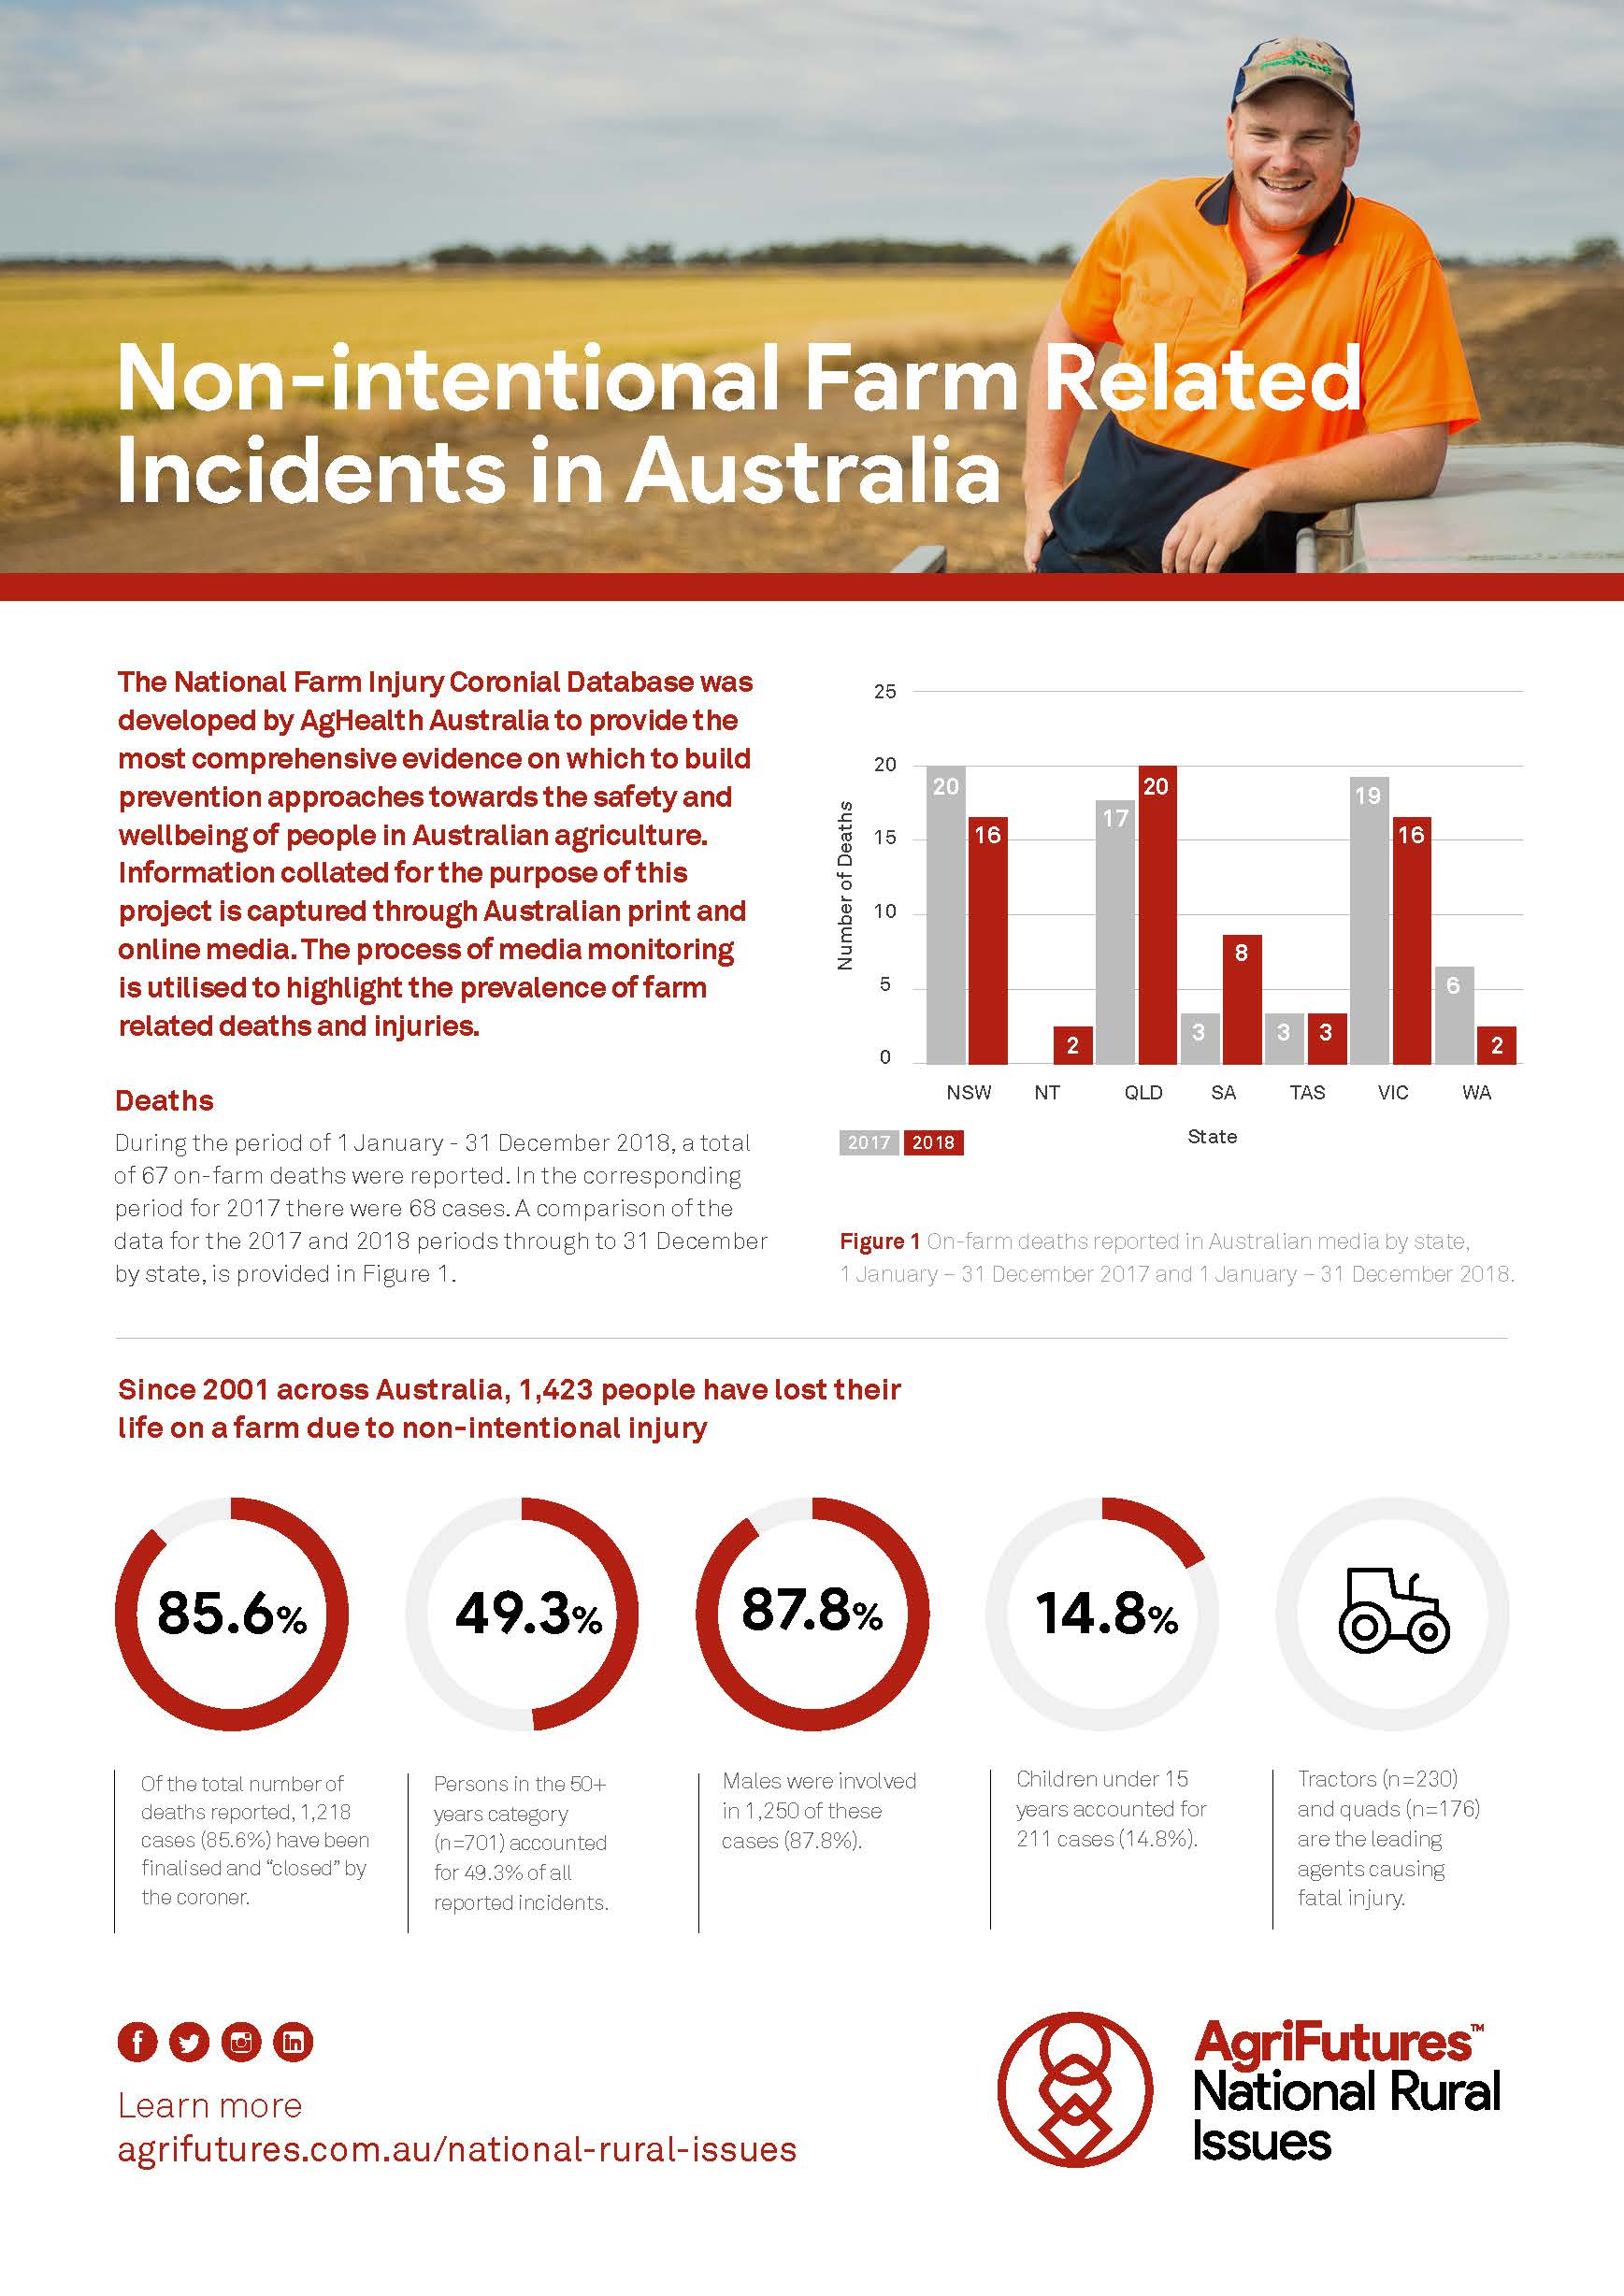 Non-intentional Farm Related Incidents in Australia 2018 - image